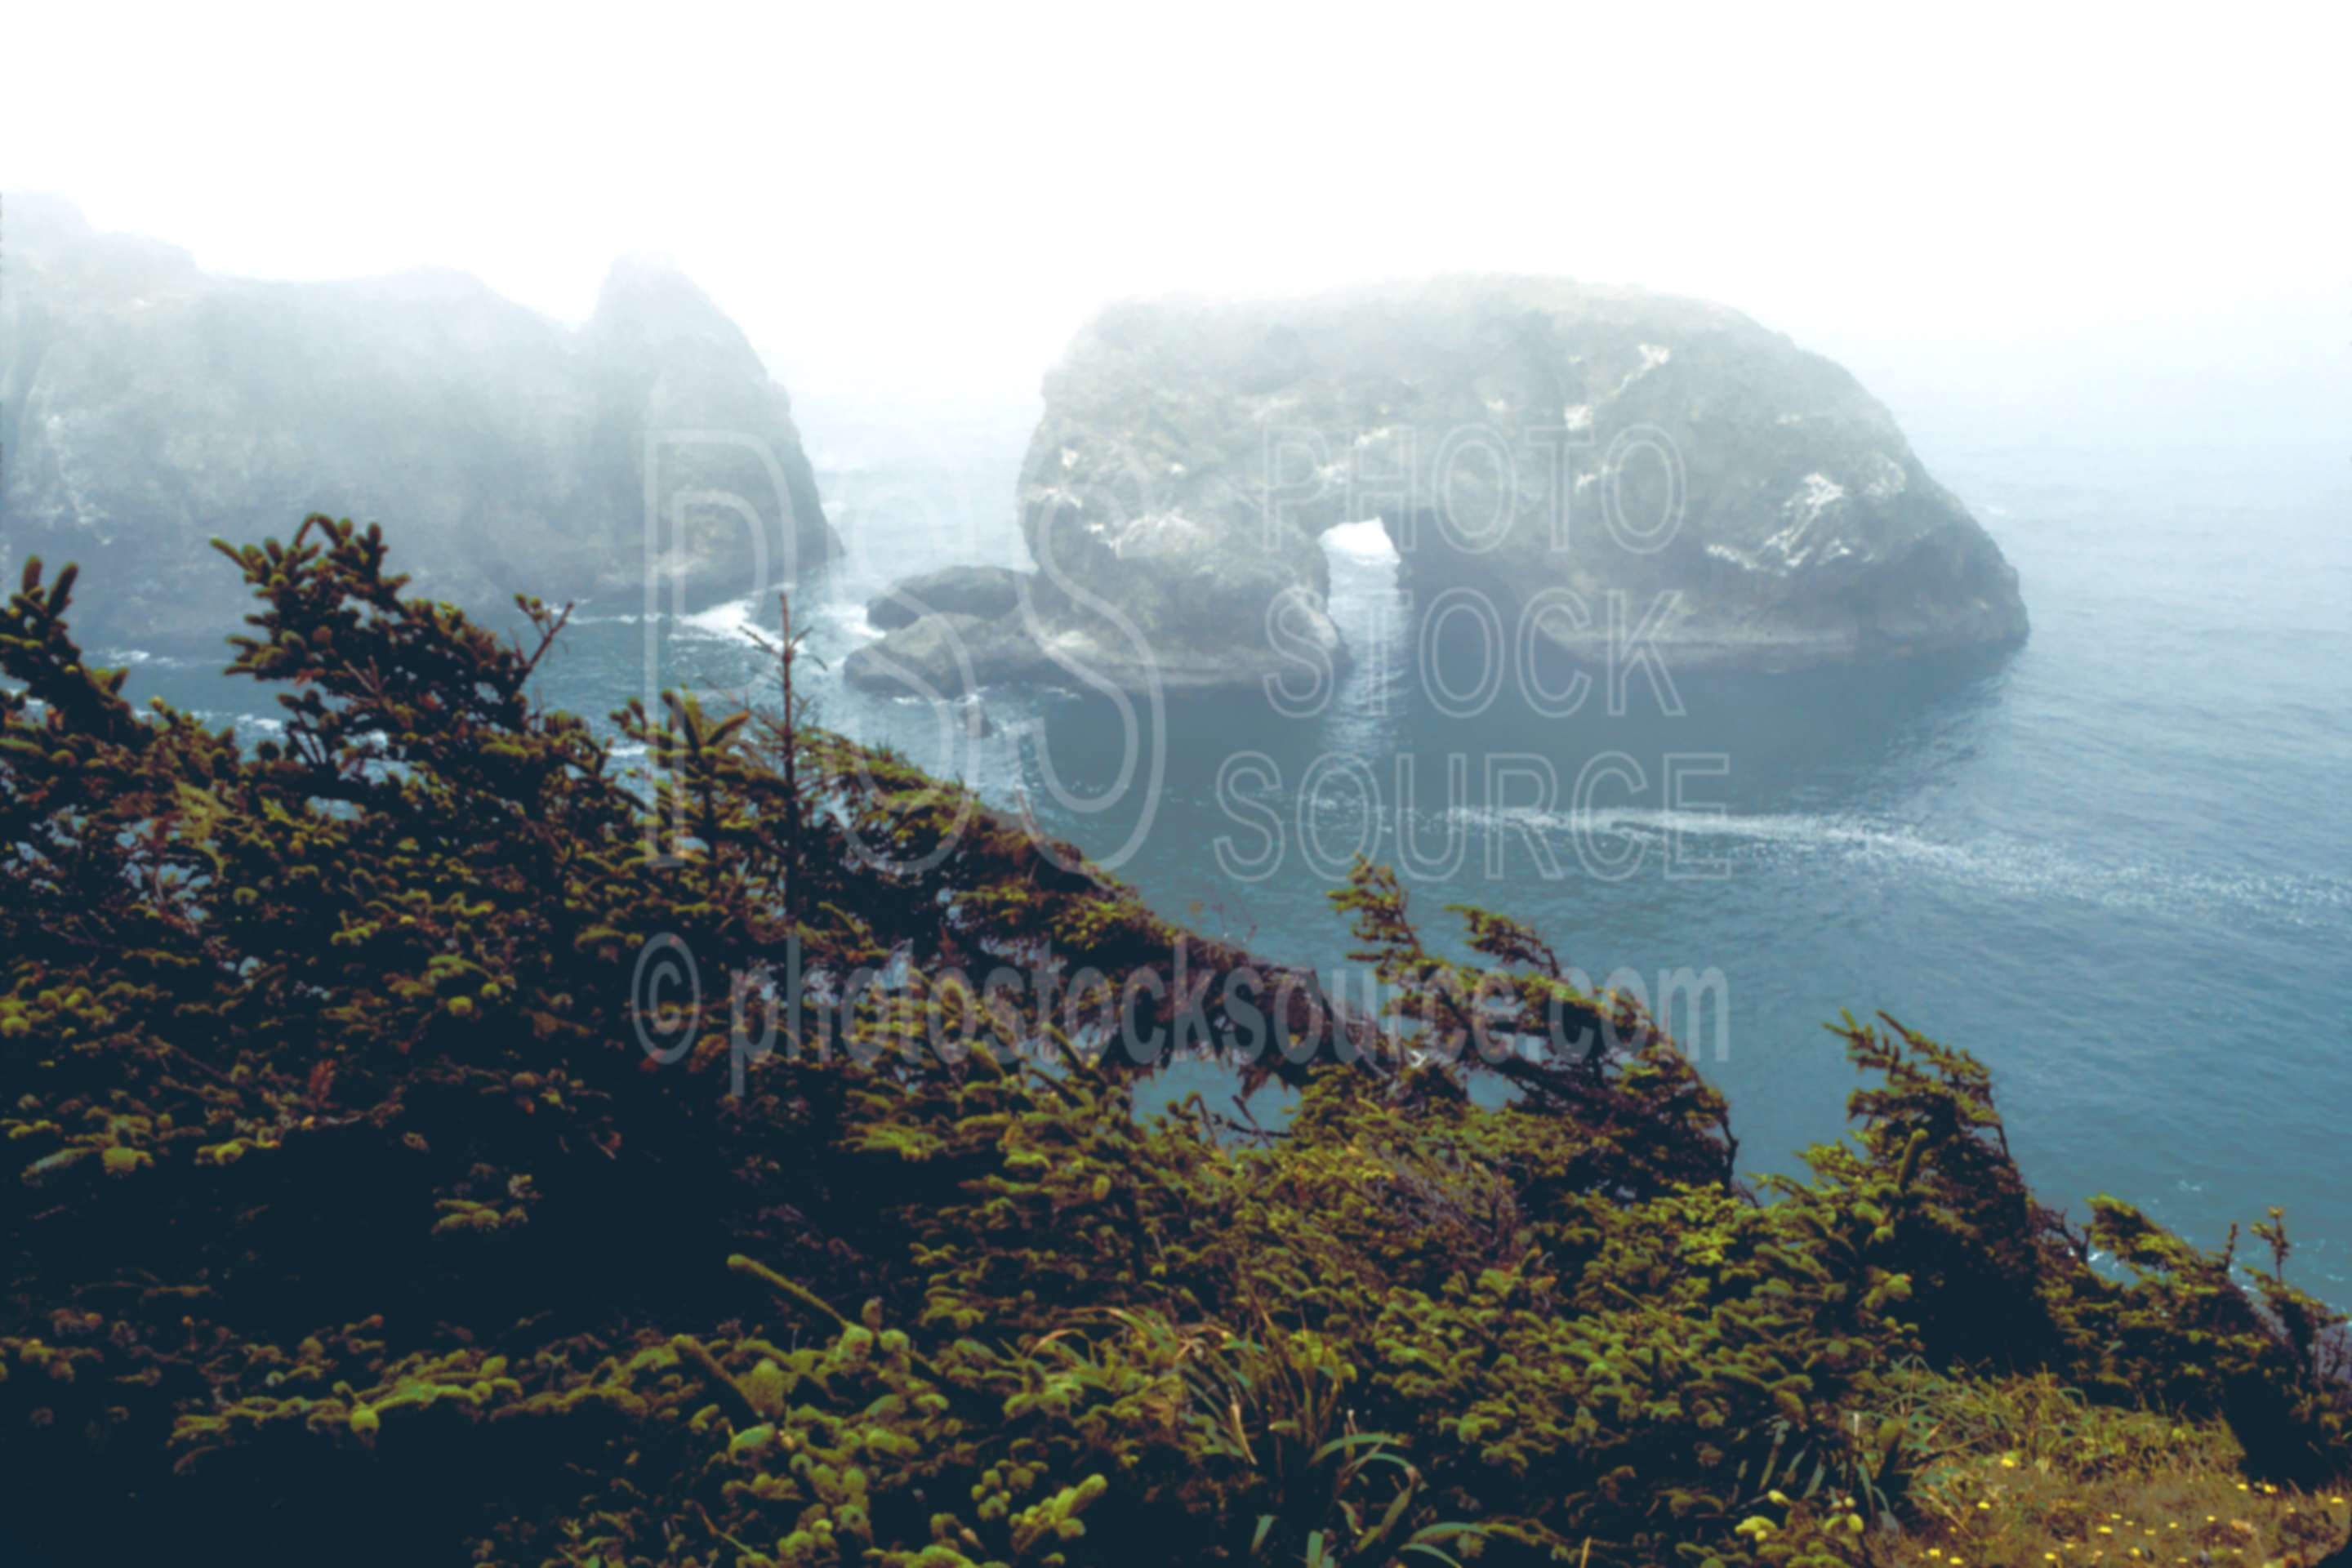 Arch Rock,fogs,mist,rock,arch,landform,usas,nature,seascapes,coast